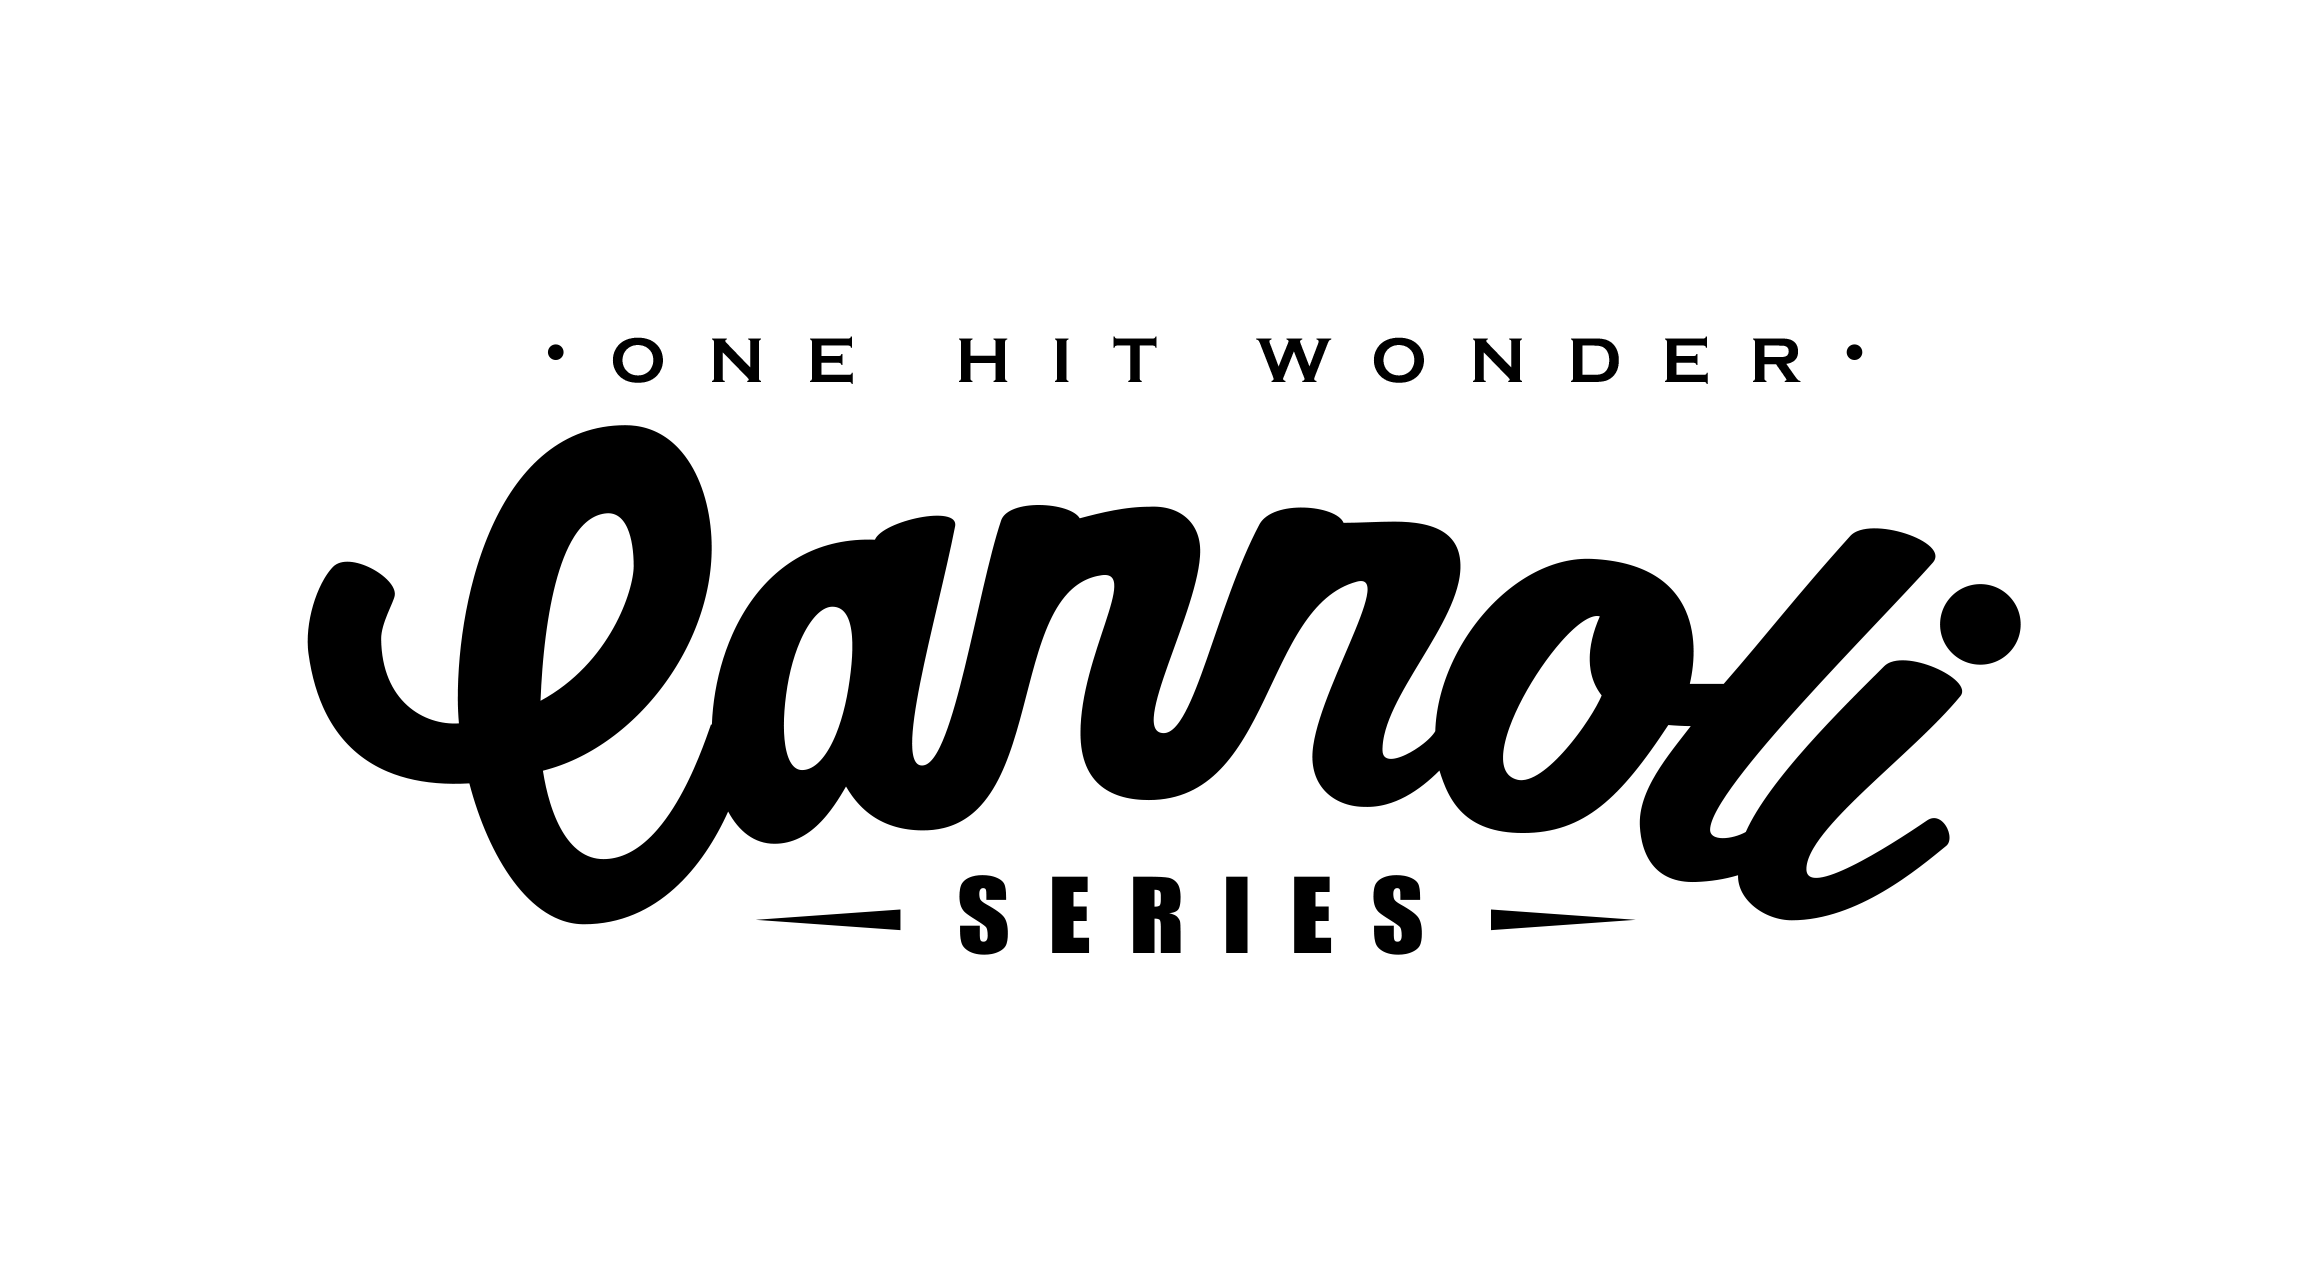 Cannoli Series